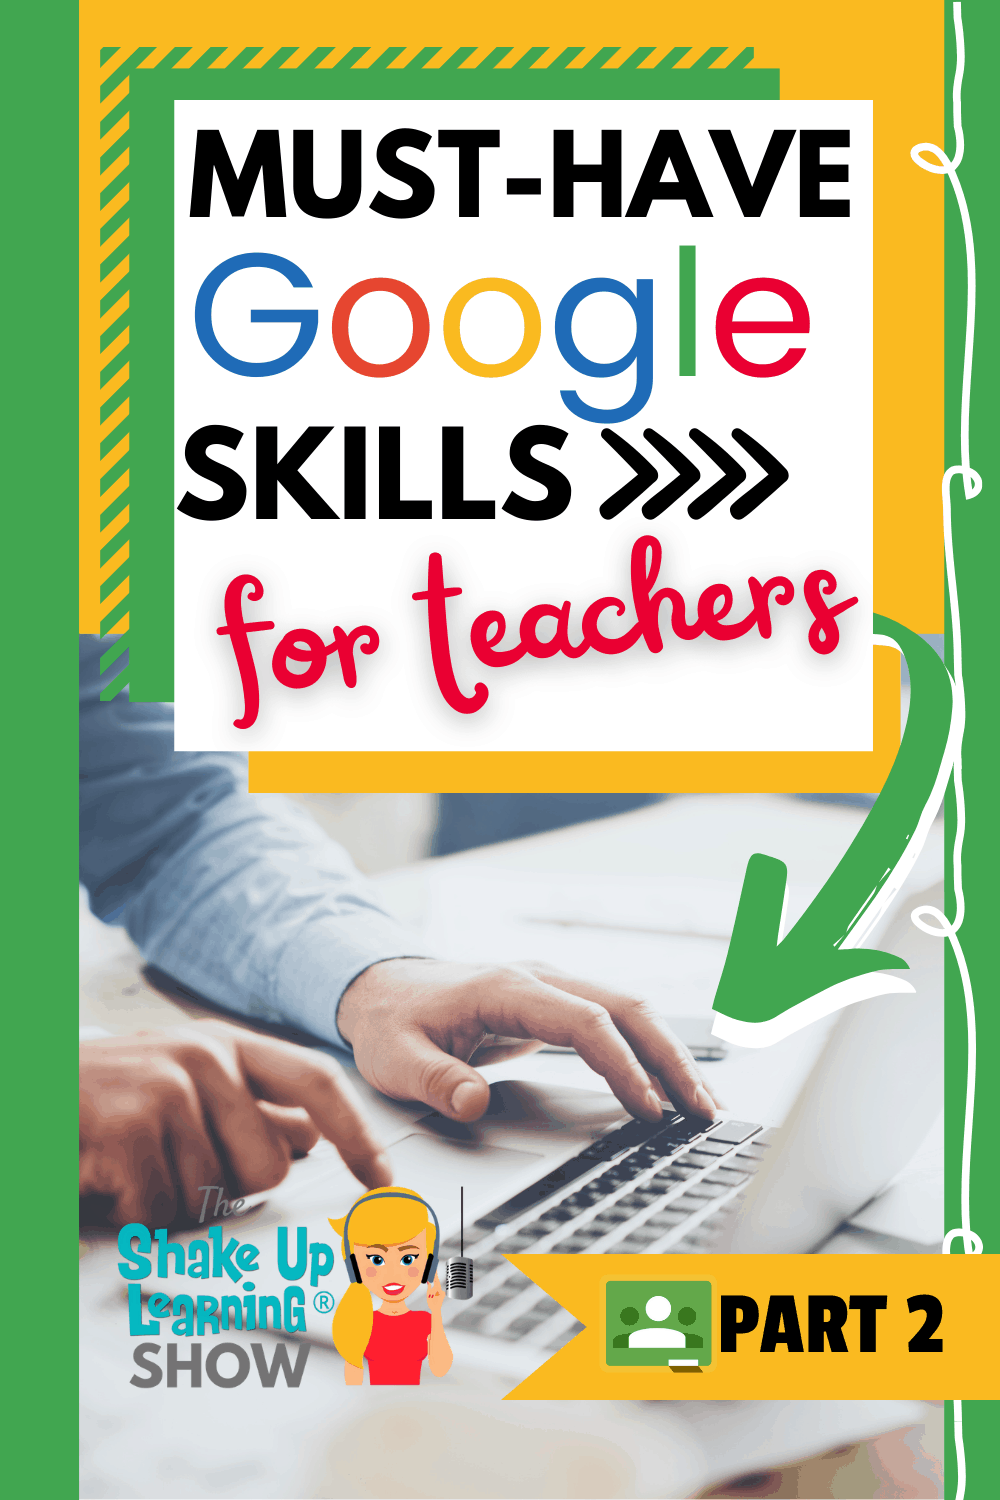 Must-Have Google Skills for Teachers (Part 2 - Google Classroom) - SULS0104